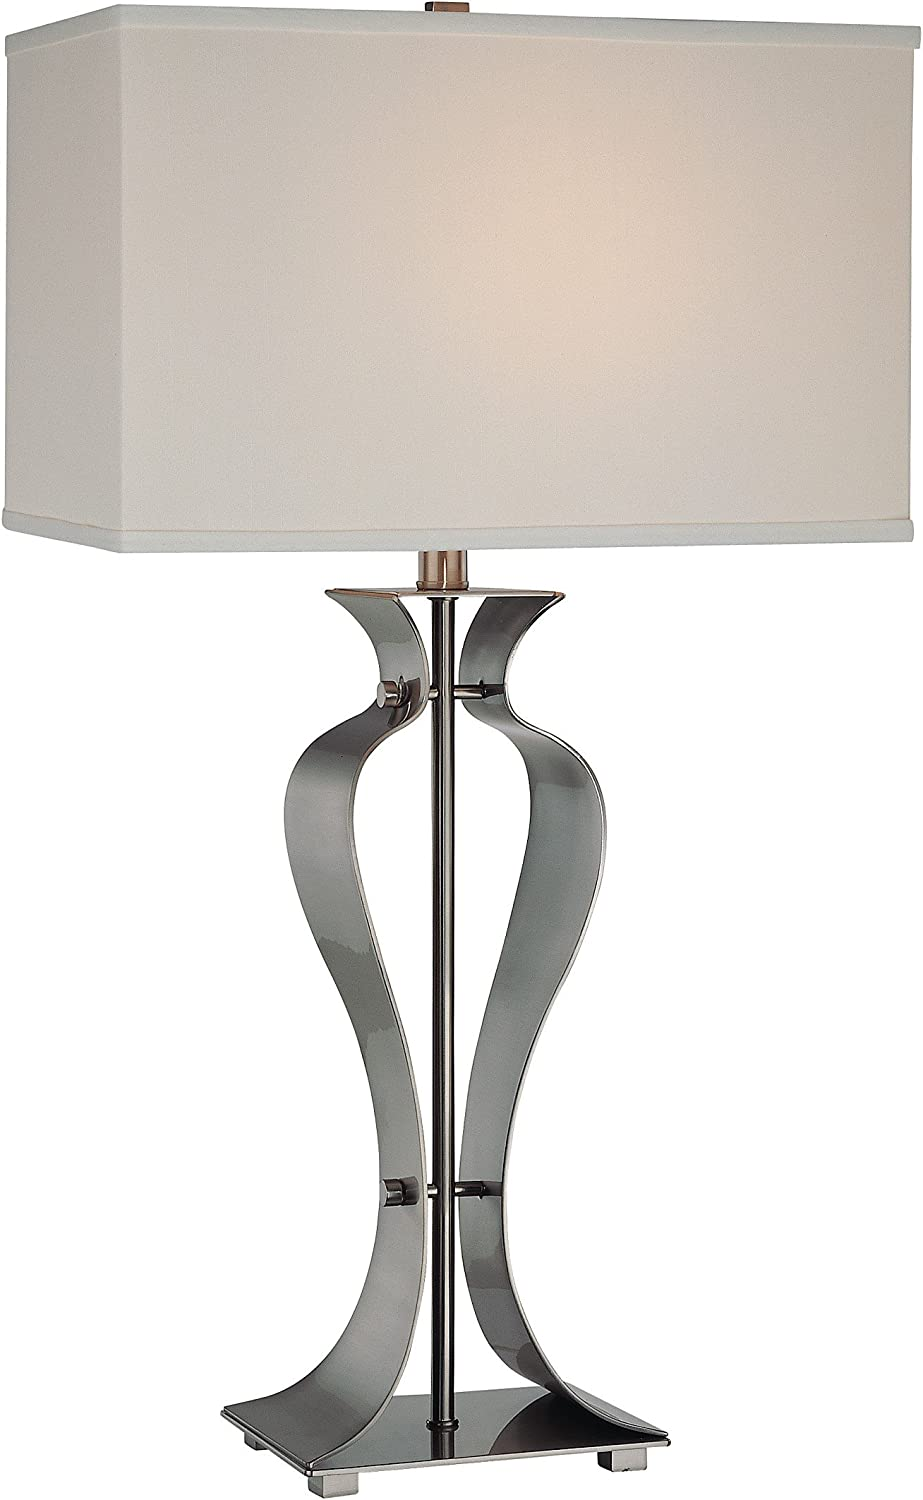 Lite Source LS-21243PS Gada Table Metal wit Lamp Polished Steel Attention brand Cheap SALE Start